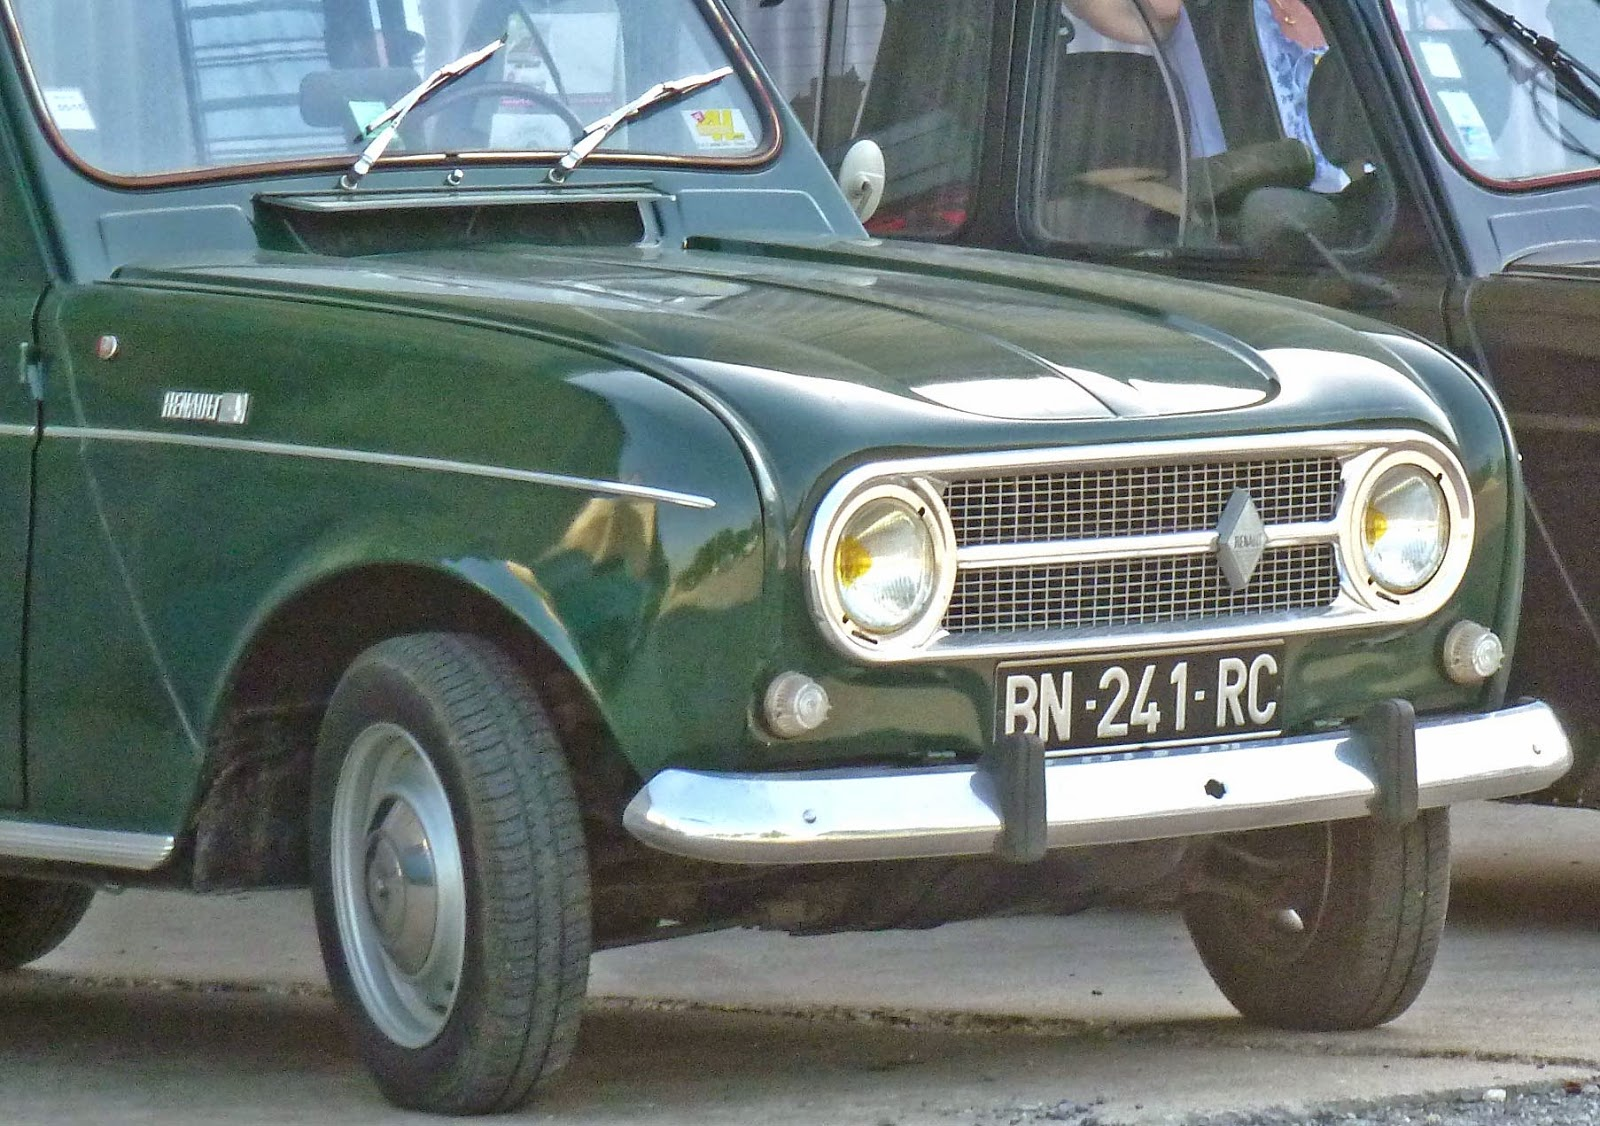 small resolution of i still sometimes think i d like to own an old renault 4 but i feel like i d need to know how or have the inclination to learn how to work on old